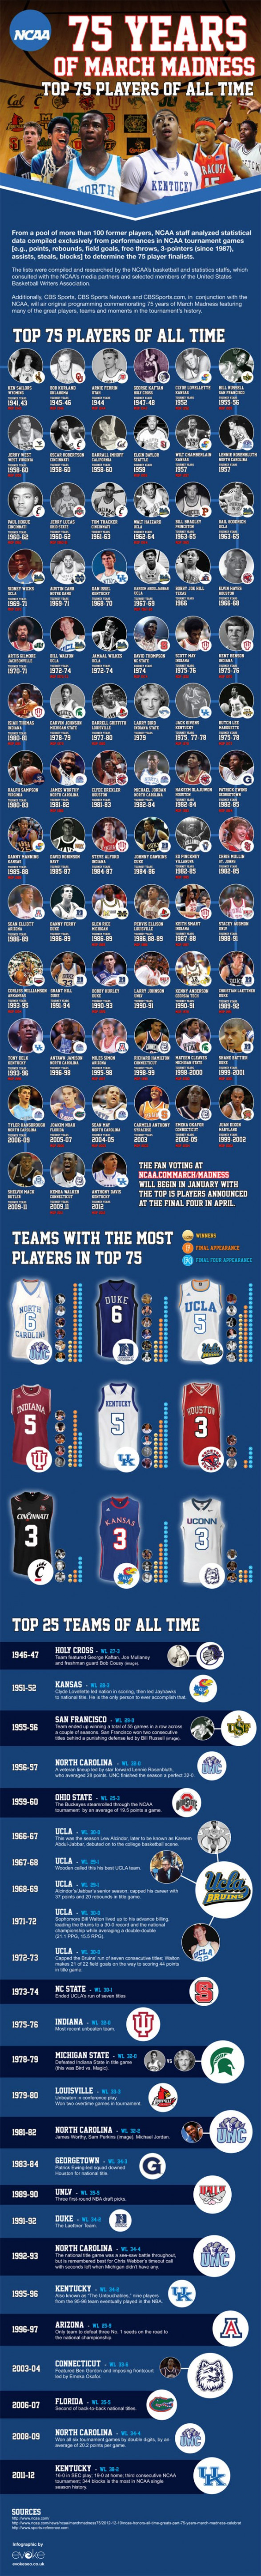 NCAA Top 75 Basketball Players of All Time